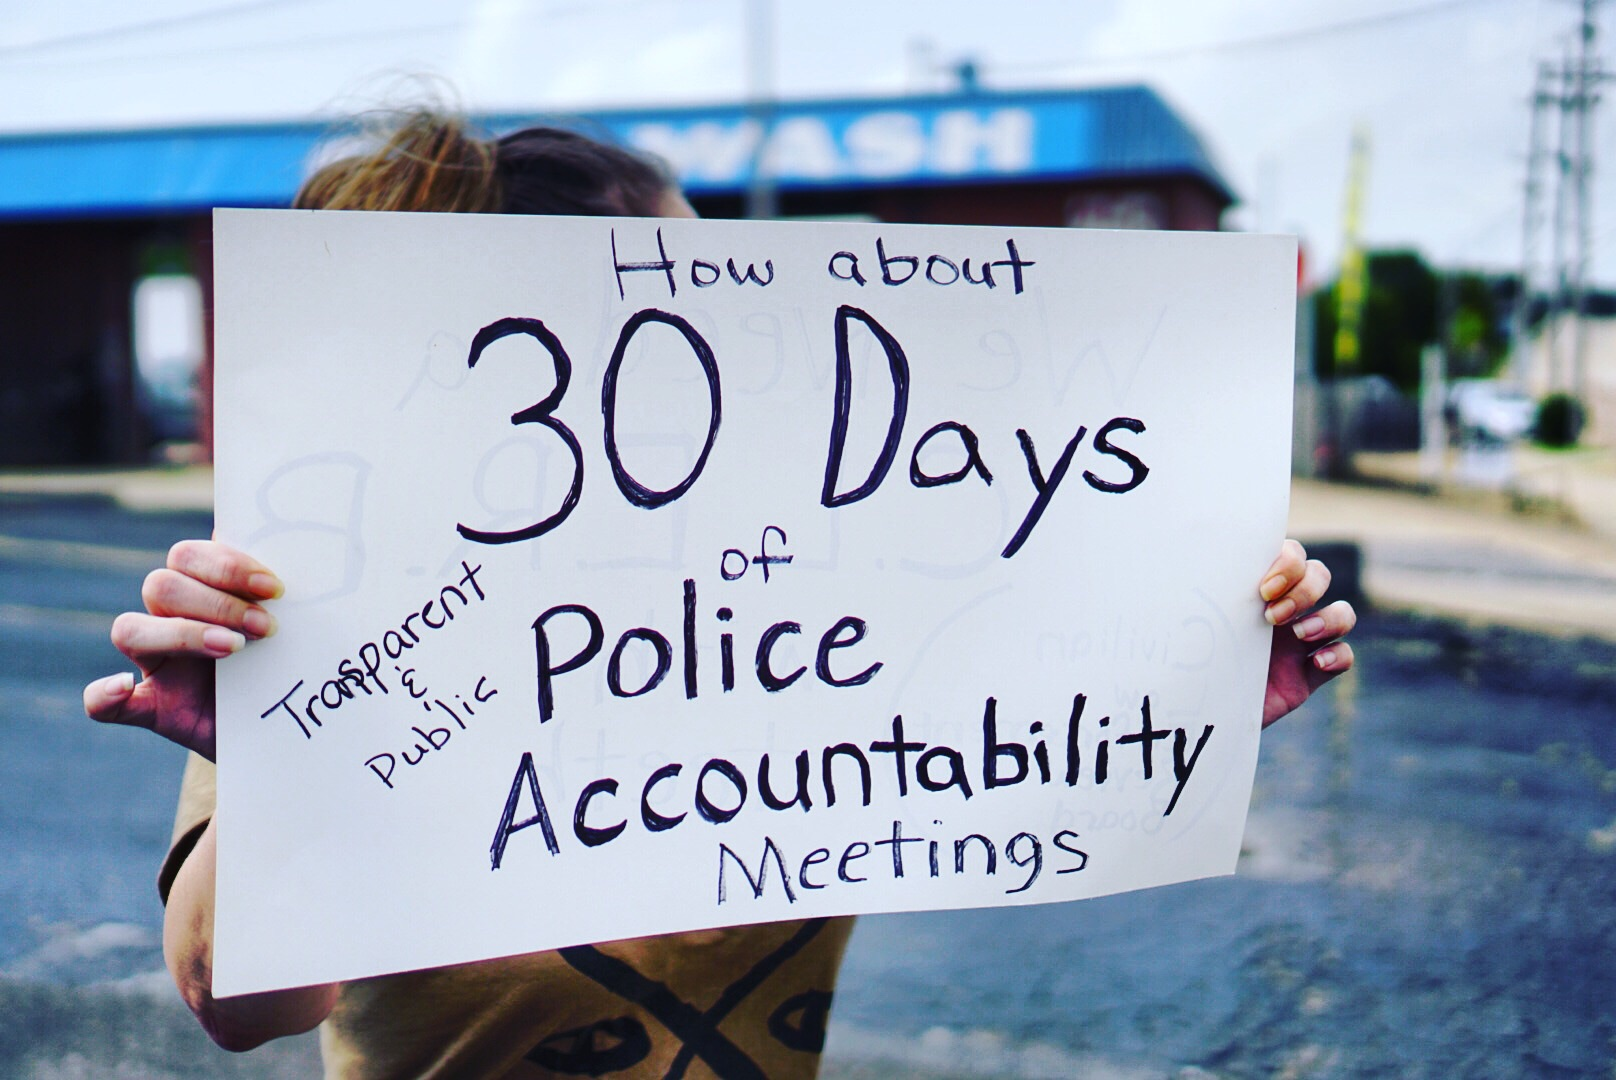 Protestor outside townhall meeting